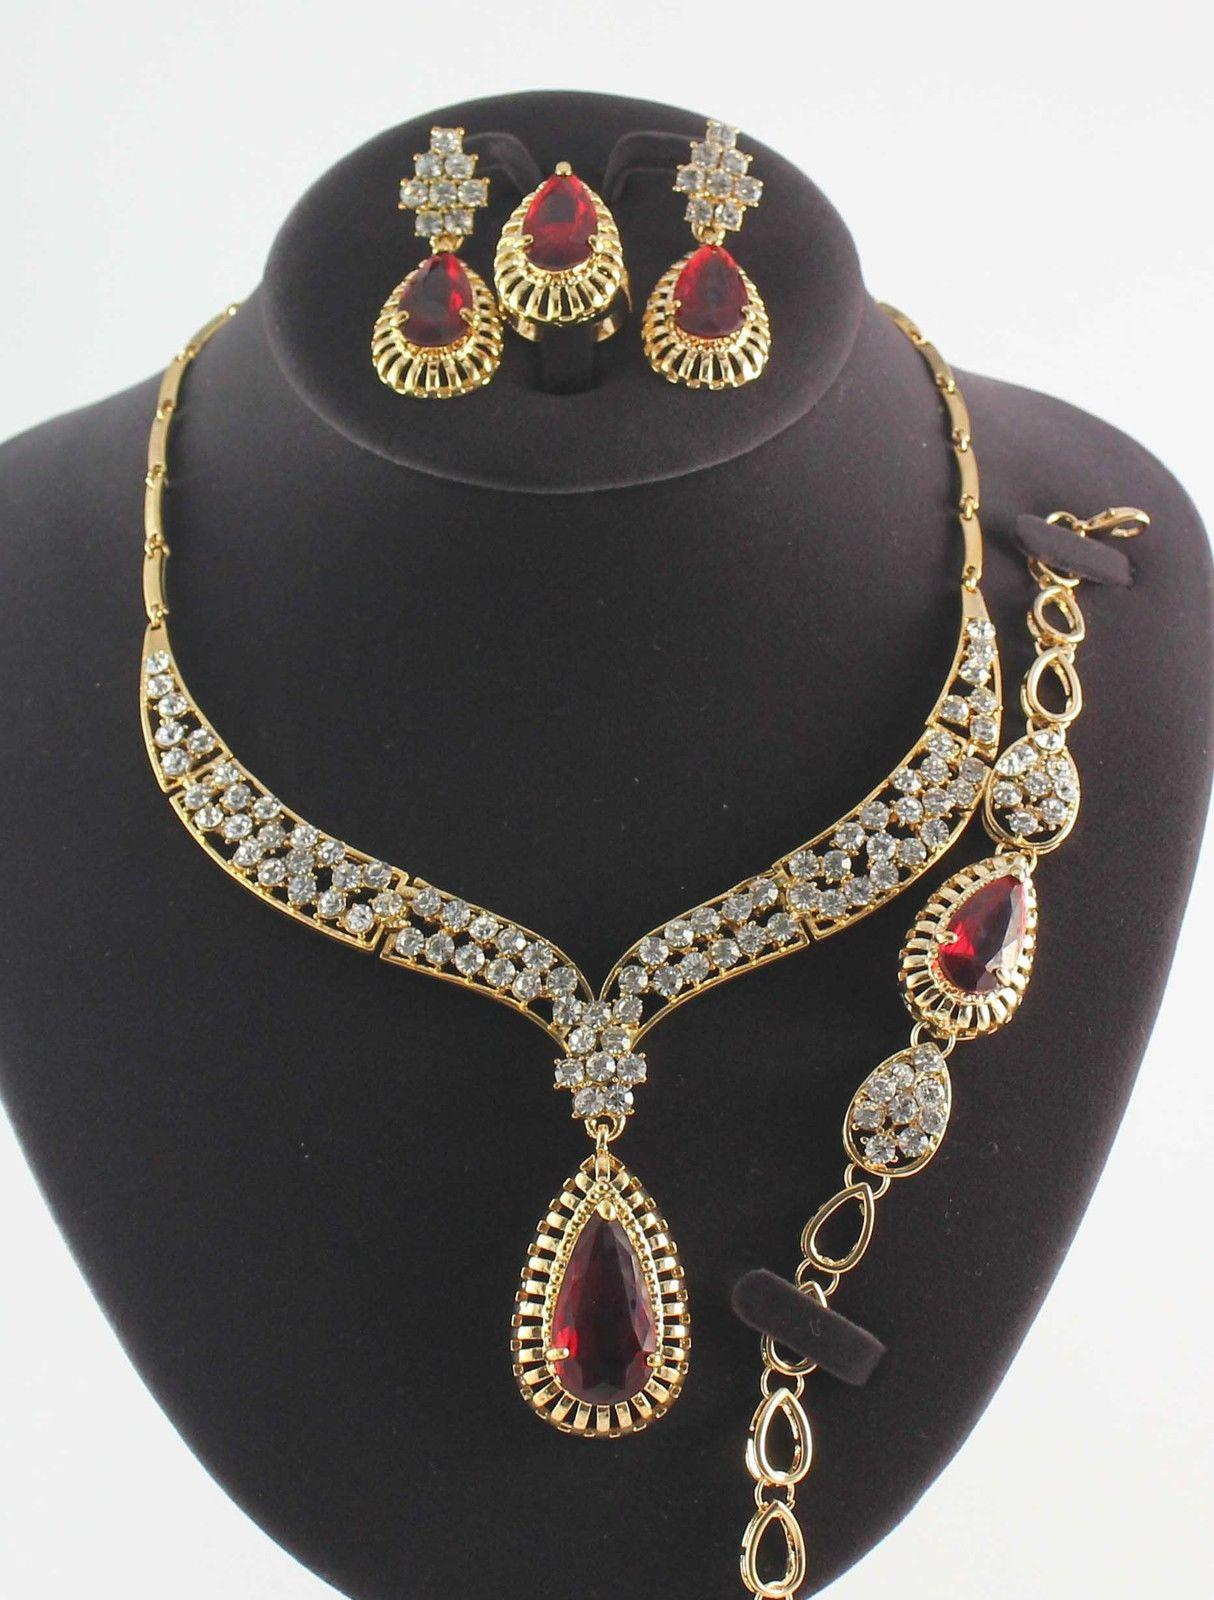 jodhpuri fashion indian meenakari jewellery pin earrings ethnic jewelry necklace with